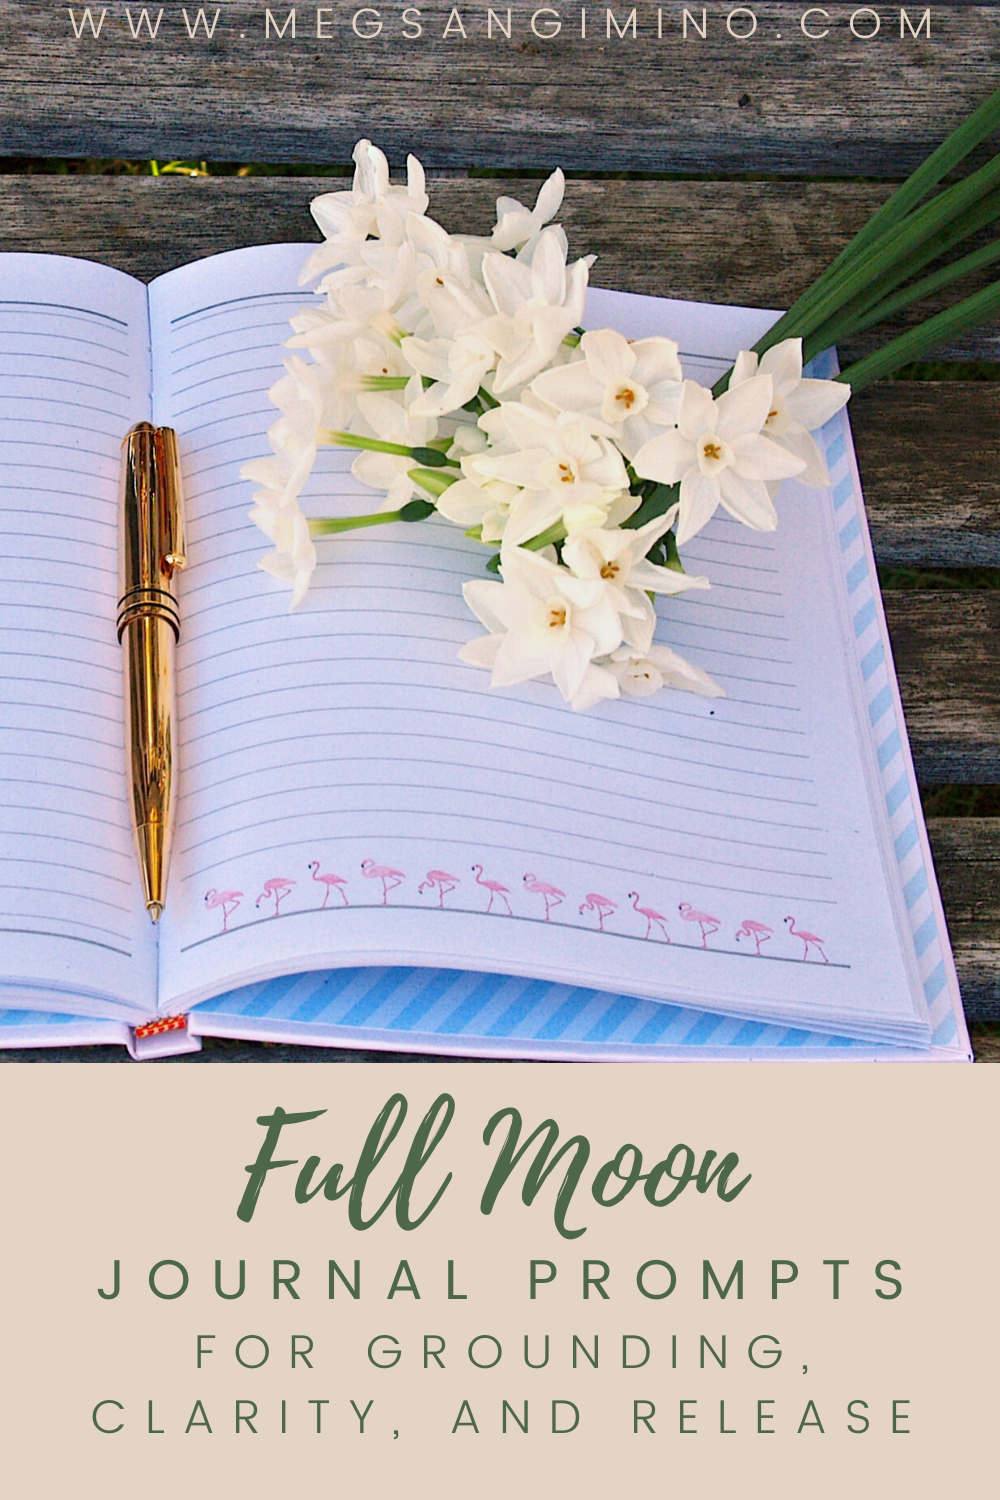 Full Moon Journal Prompts